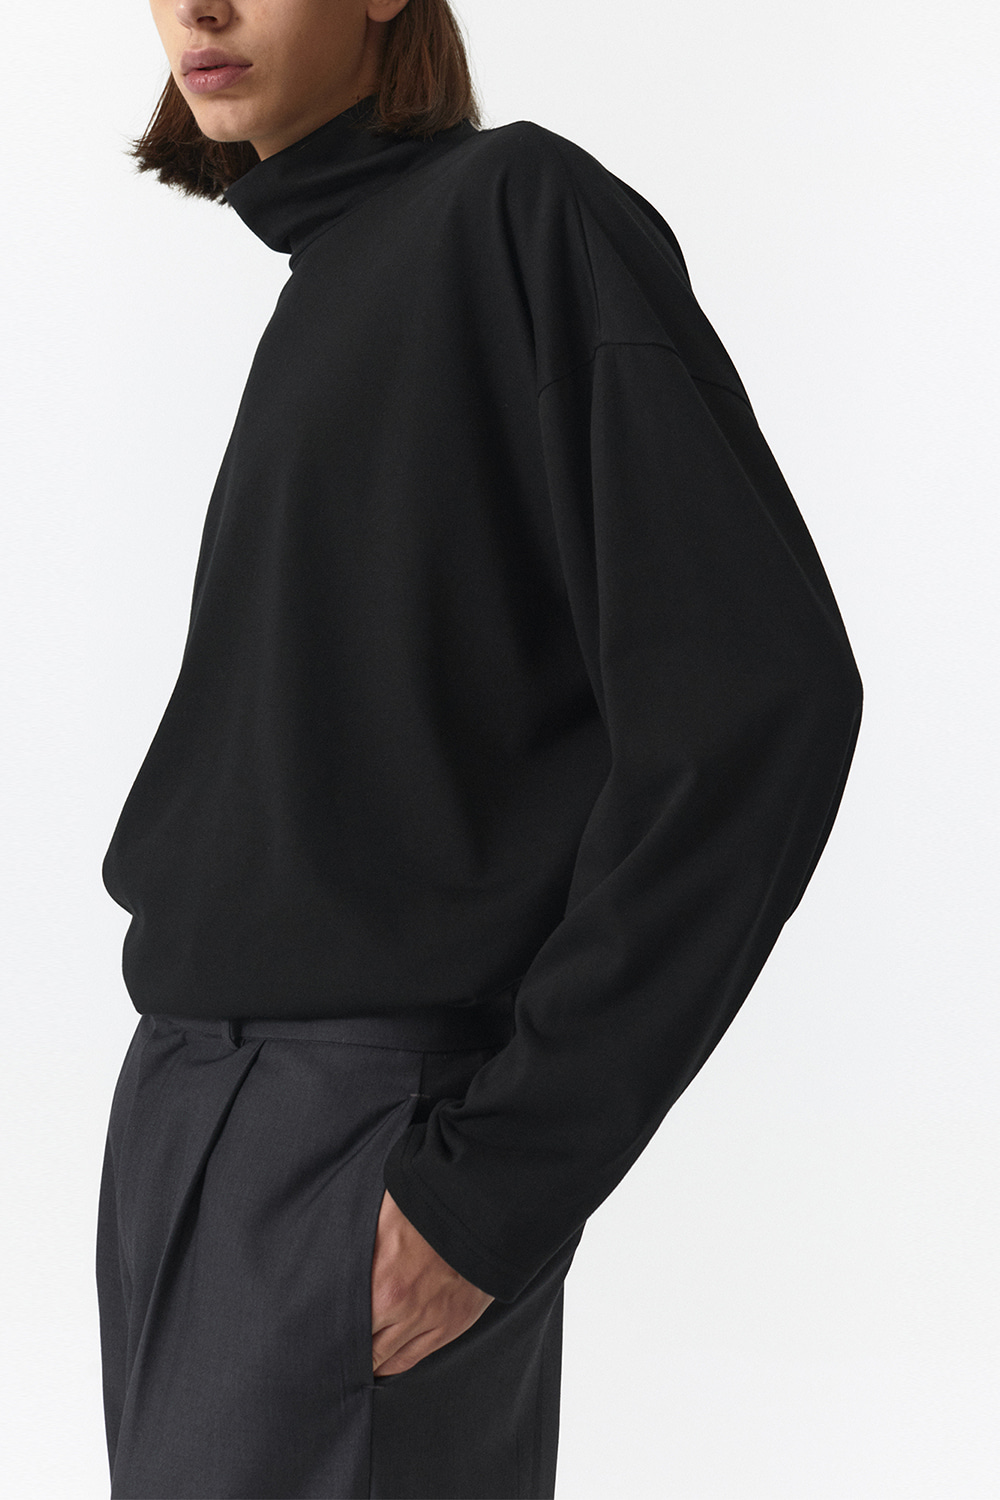 Turtle Neck Long Sleeves Men JA [Black]